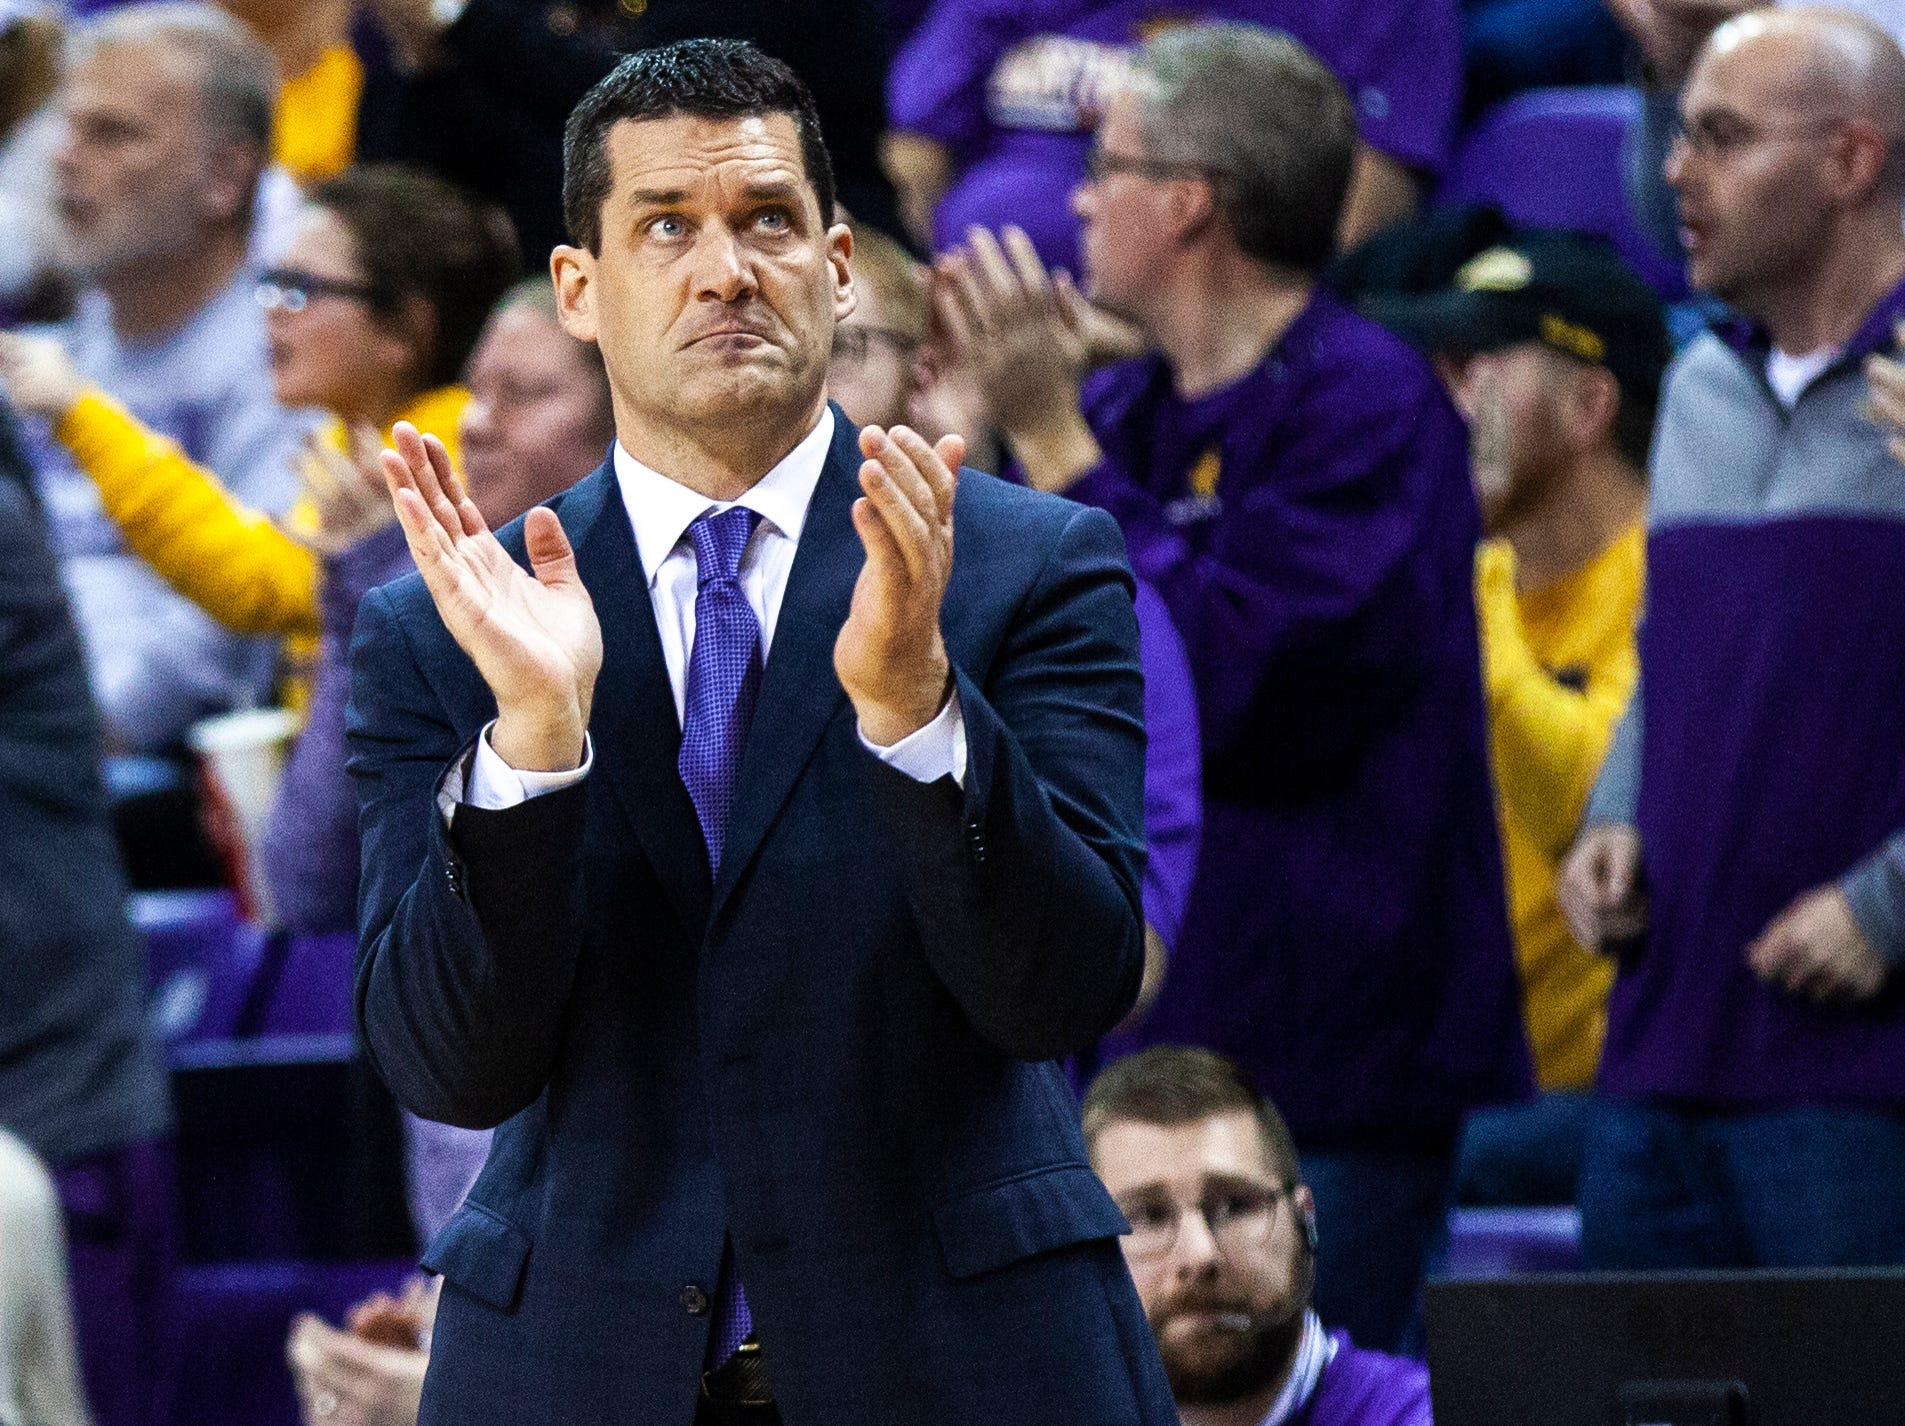 Northern Iowa head coach Ben Jacobson claps during a NCAA Missouri Valley Conference men's basketball game on Saturday, Jan. 5, 2019, at the McLeod Center in Cedar Falls, Iowa.